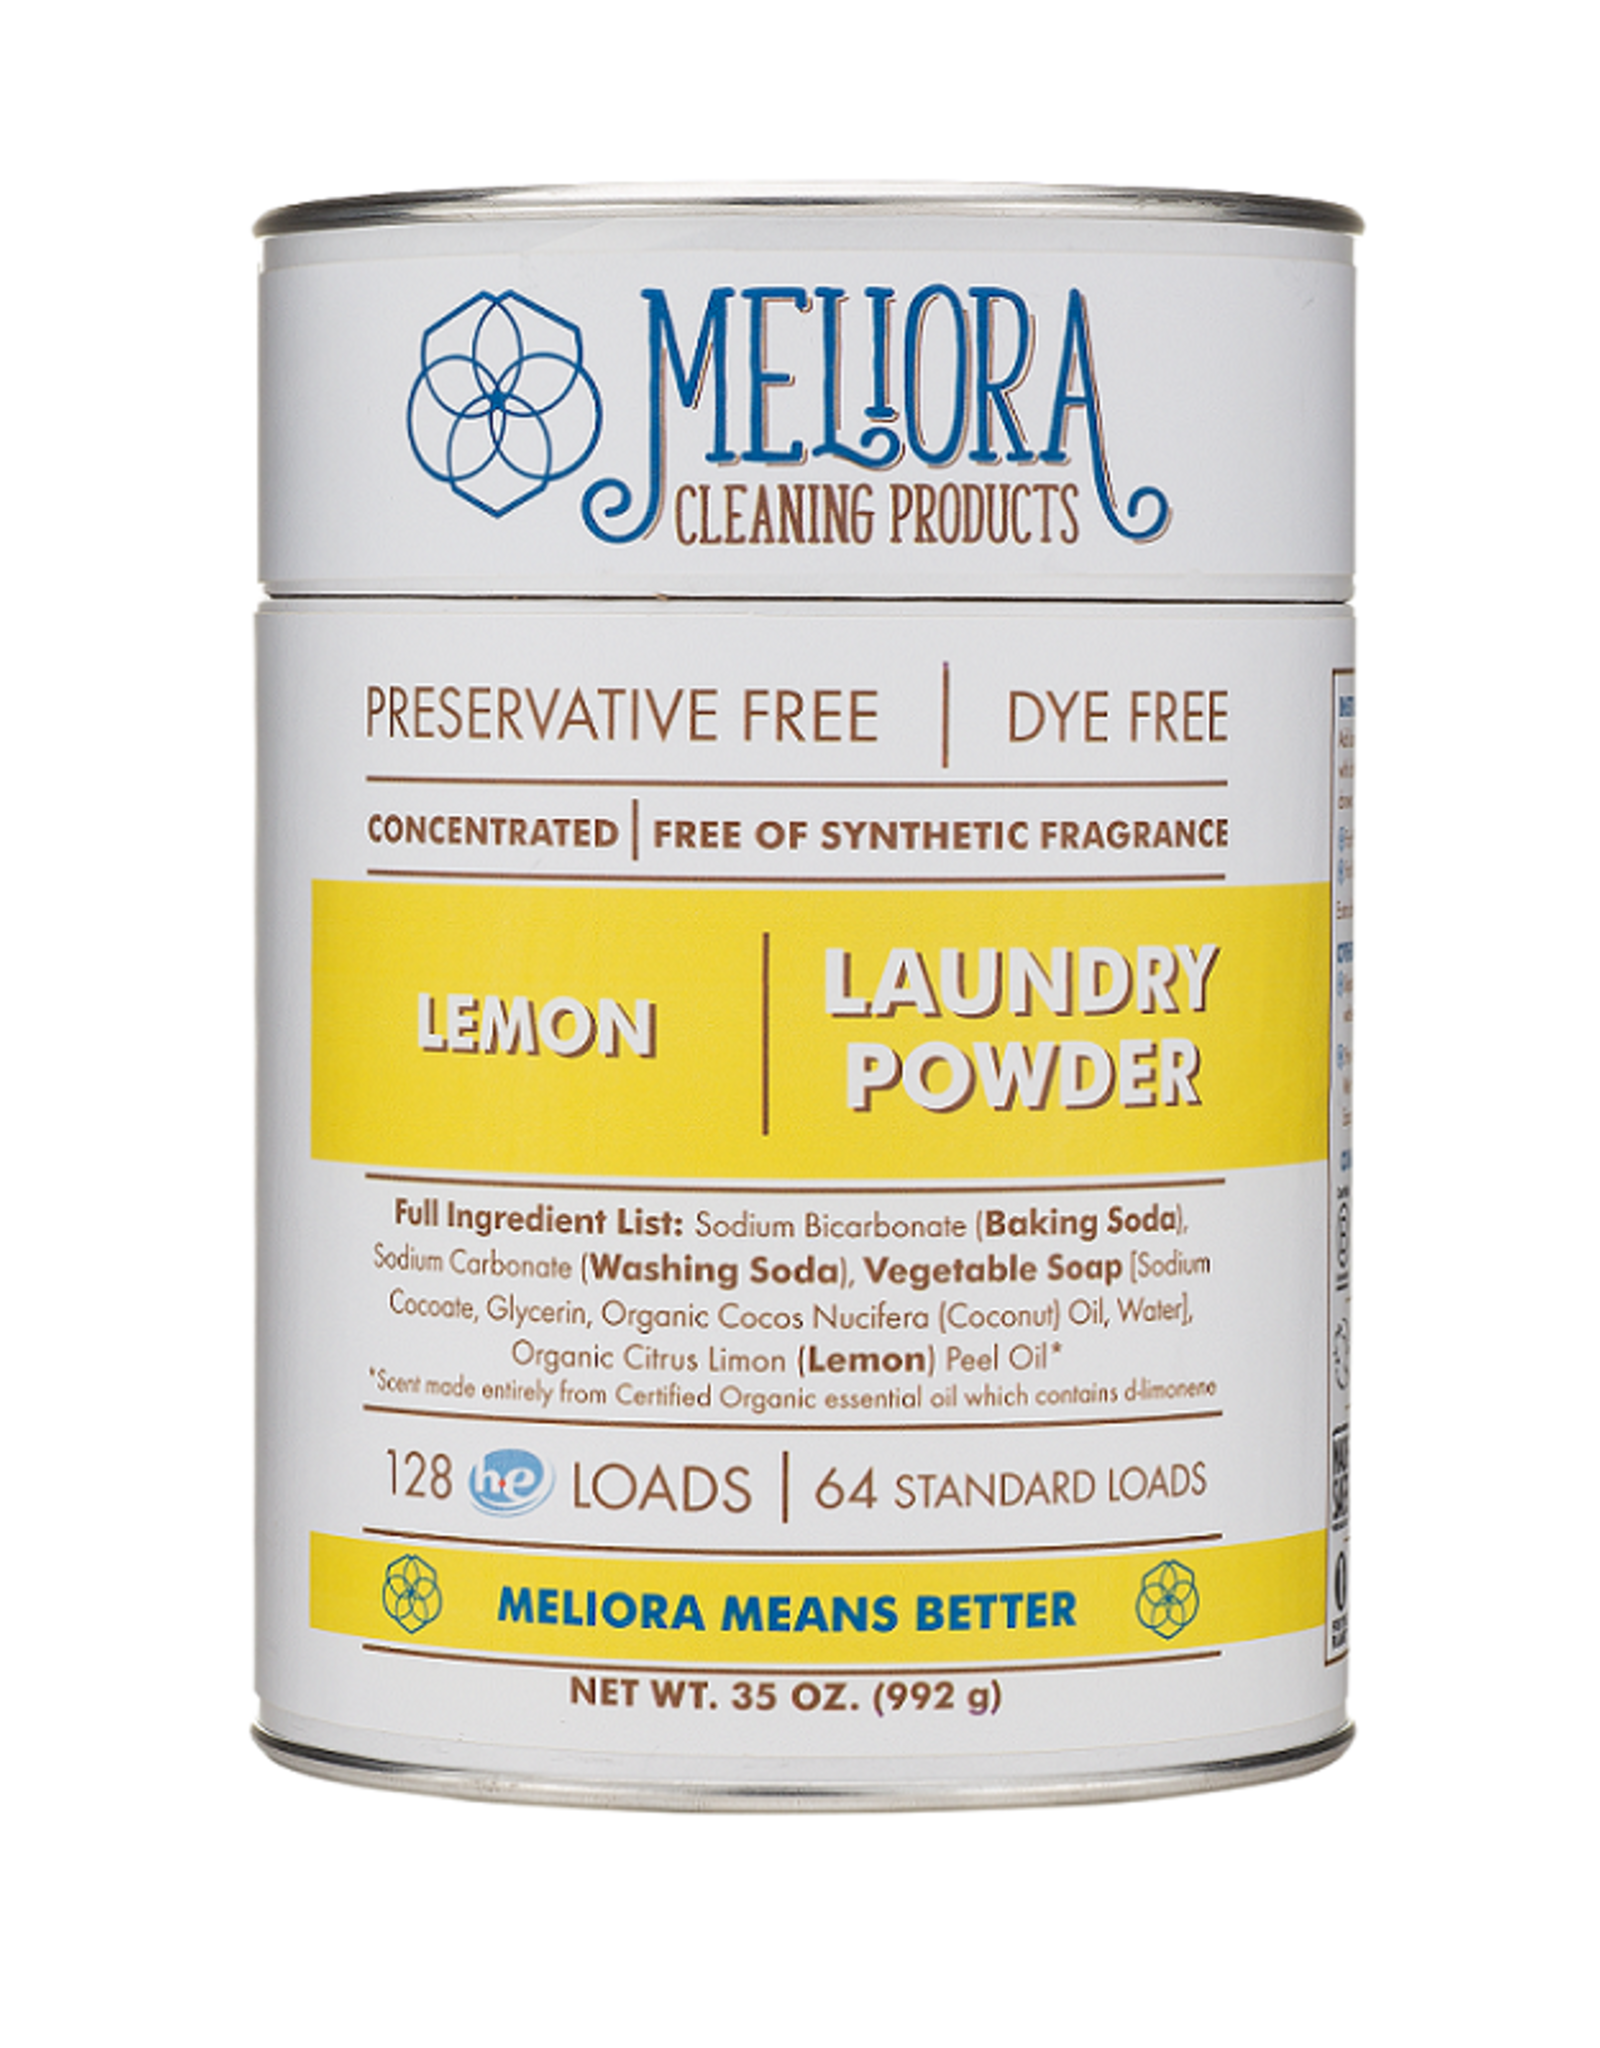 Meliora Lemon Laundry Powder